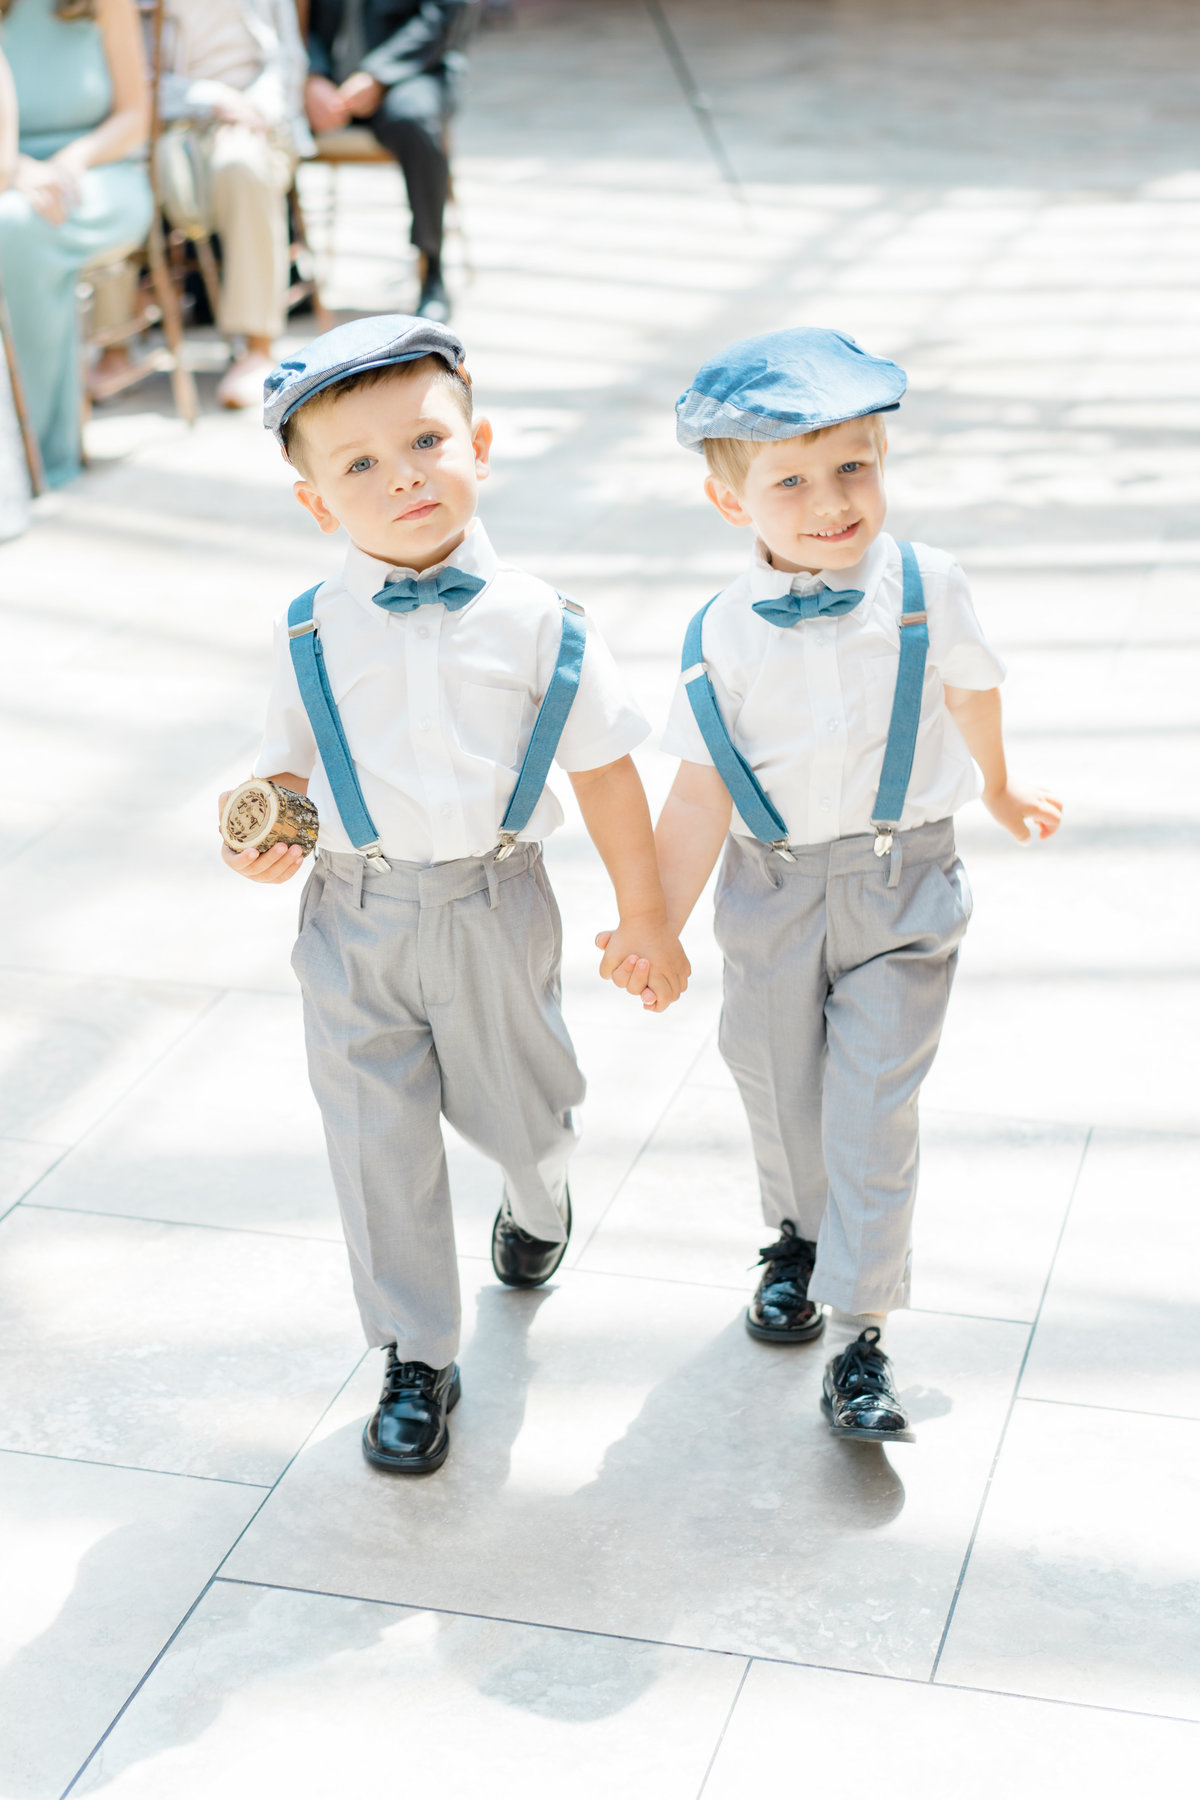 long-island-wedding-photographer-Jennifer-Lam-ring-bearers-wearing-suspenders